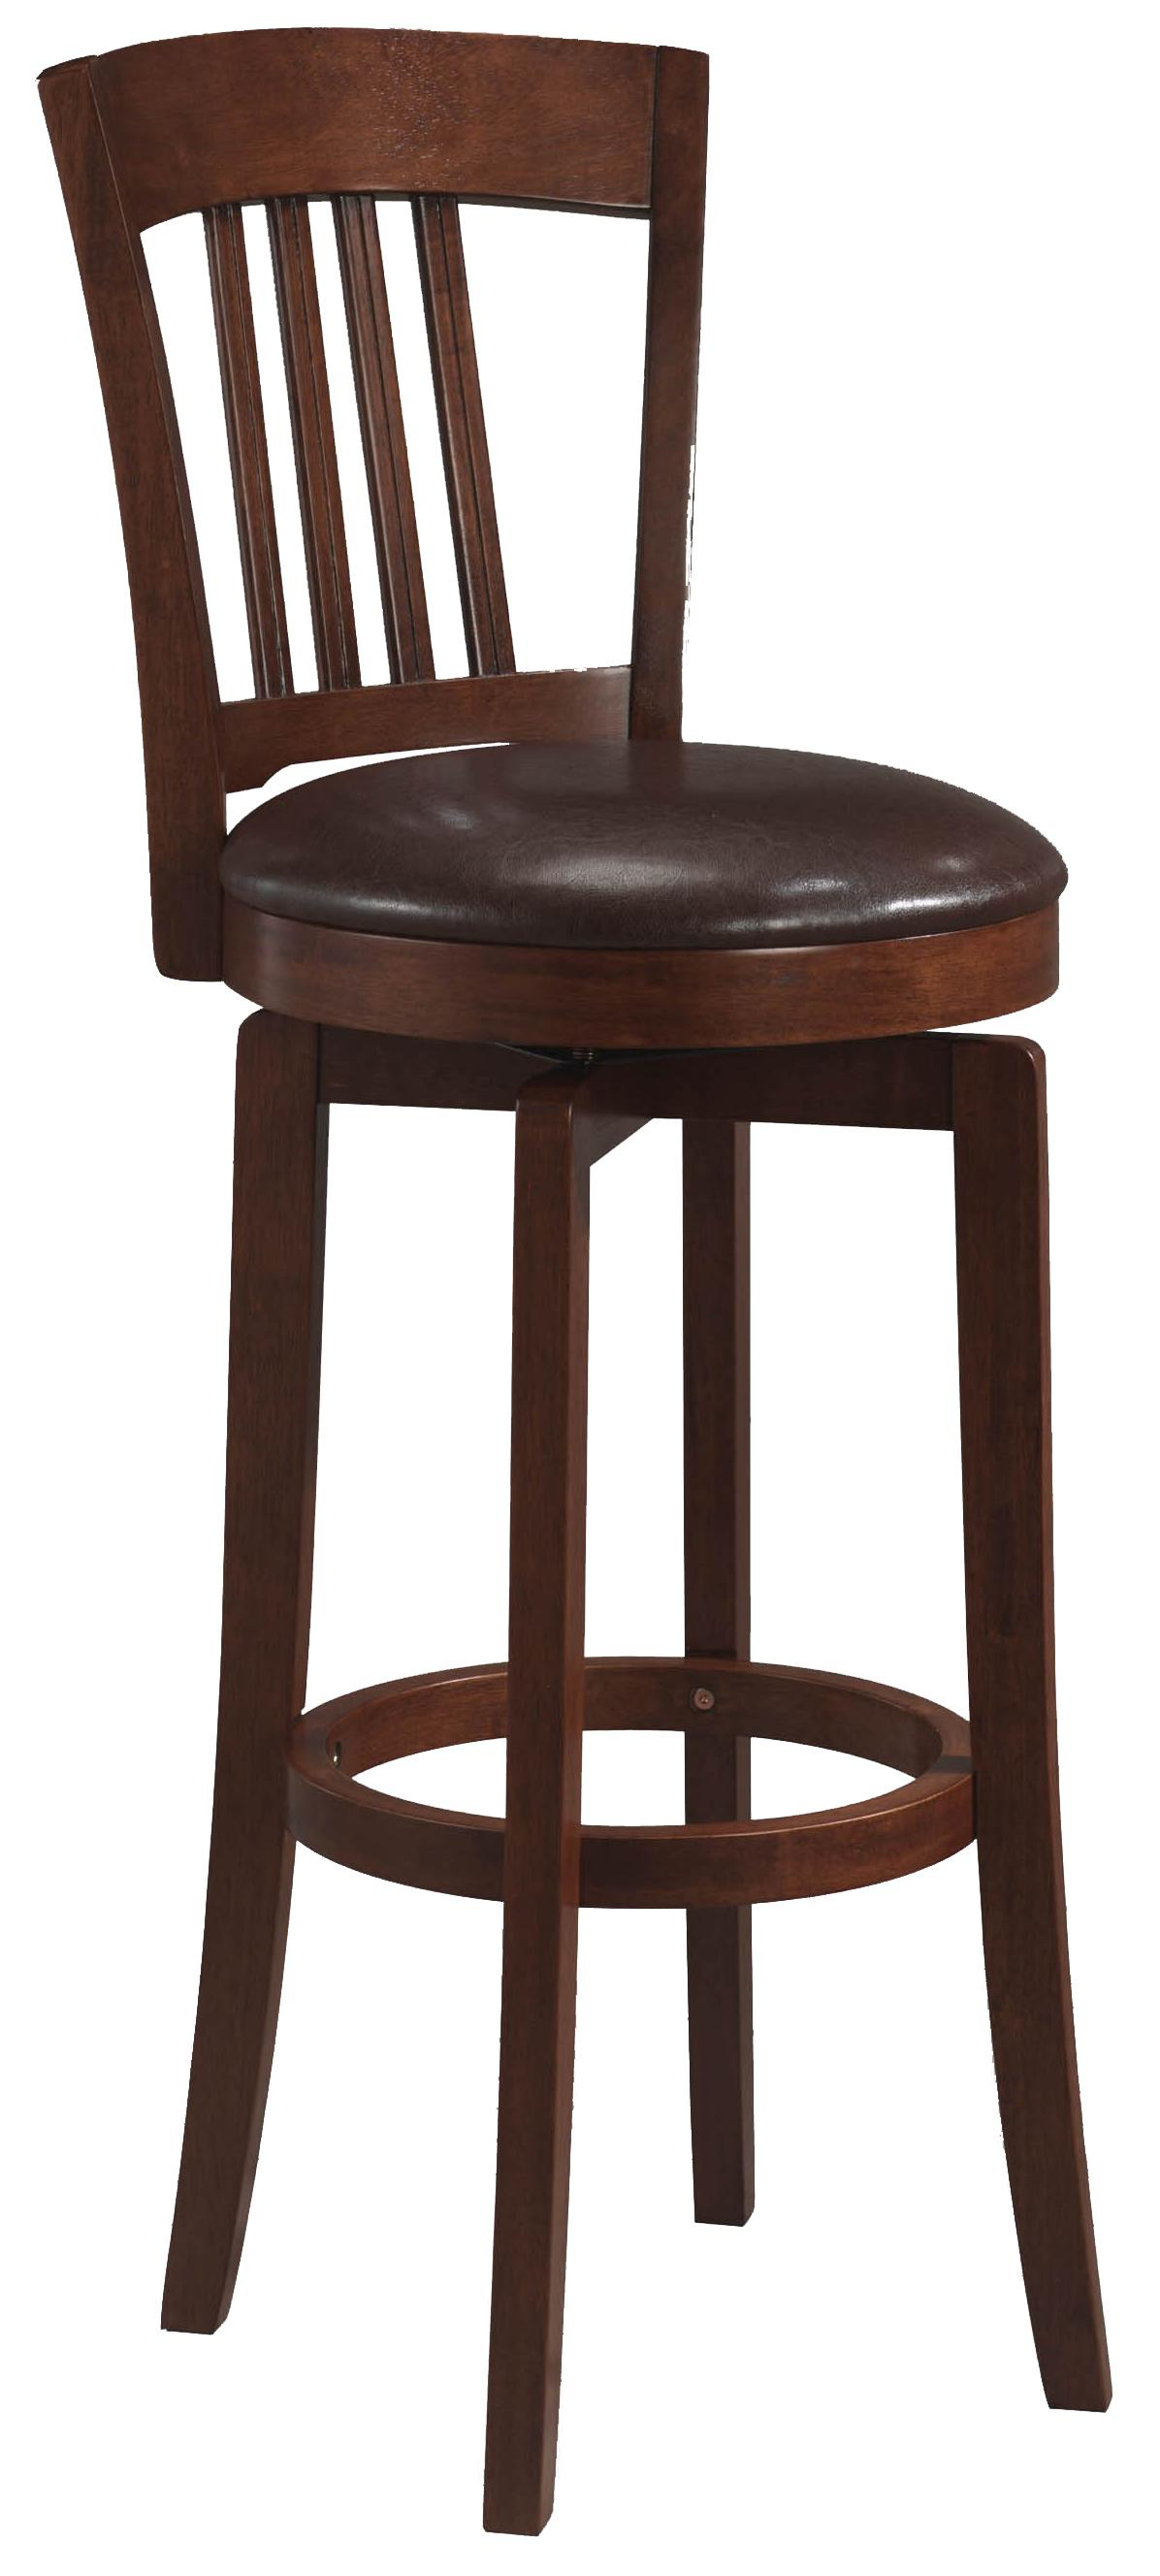 "Hillsdale Wood Stools 30"" Bar Height Canton Swivel Stool - Item Number: 4166-833"